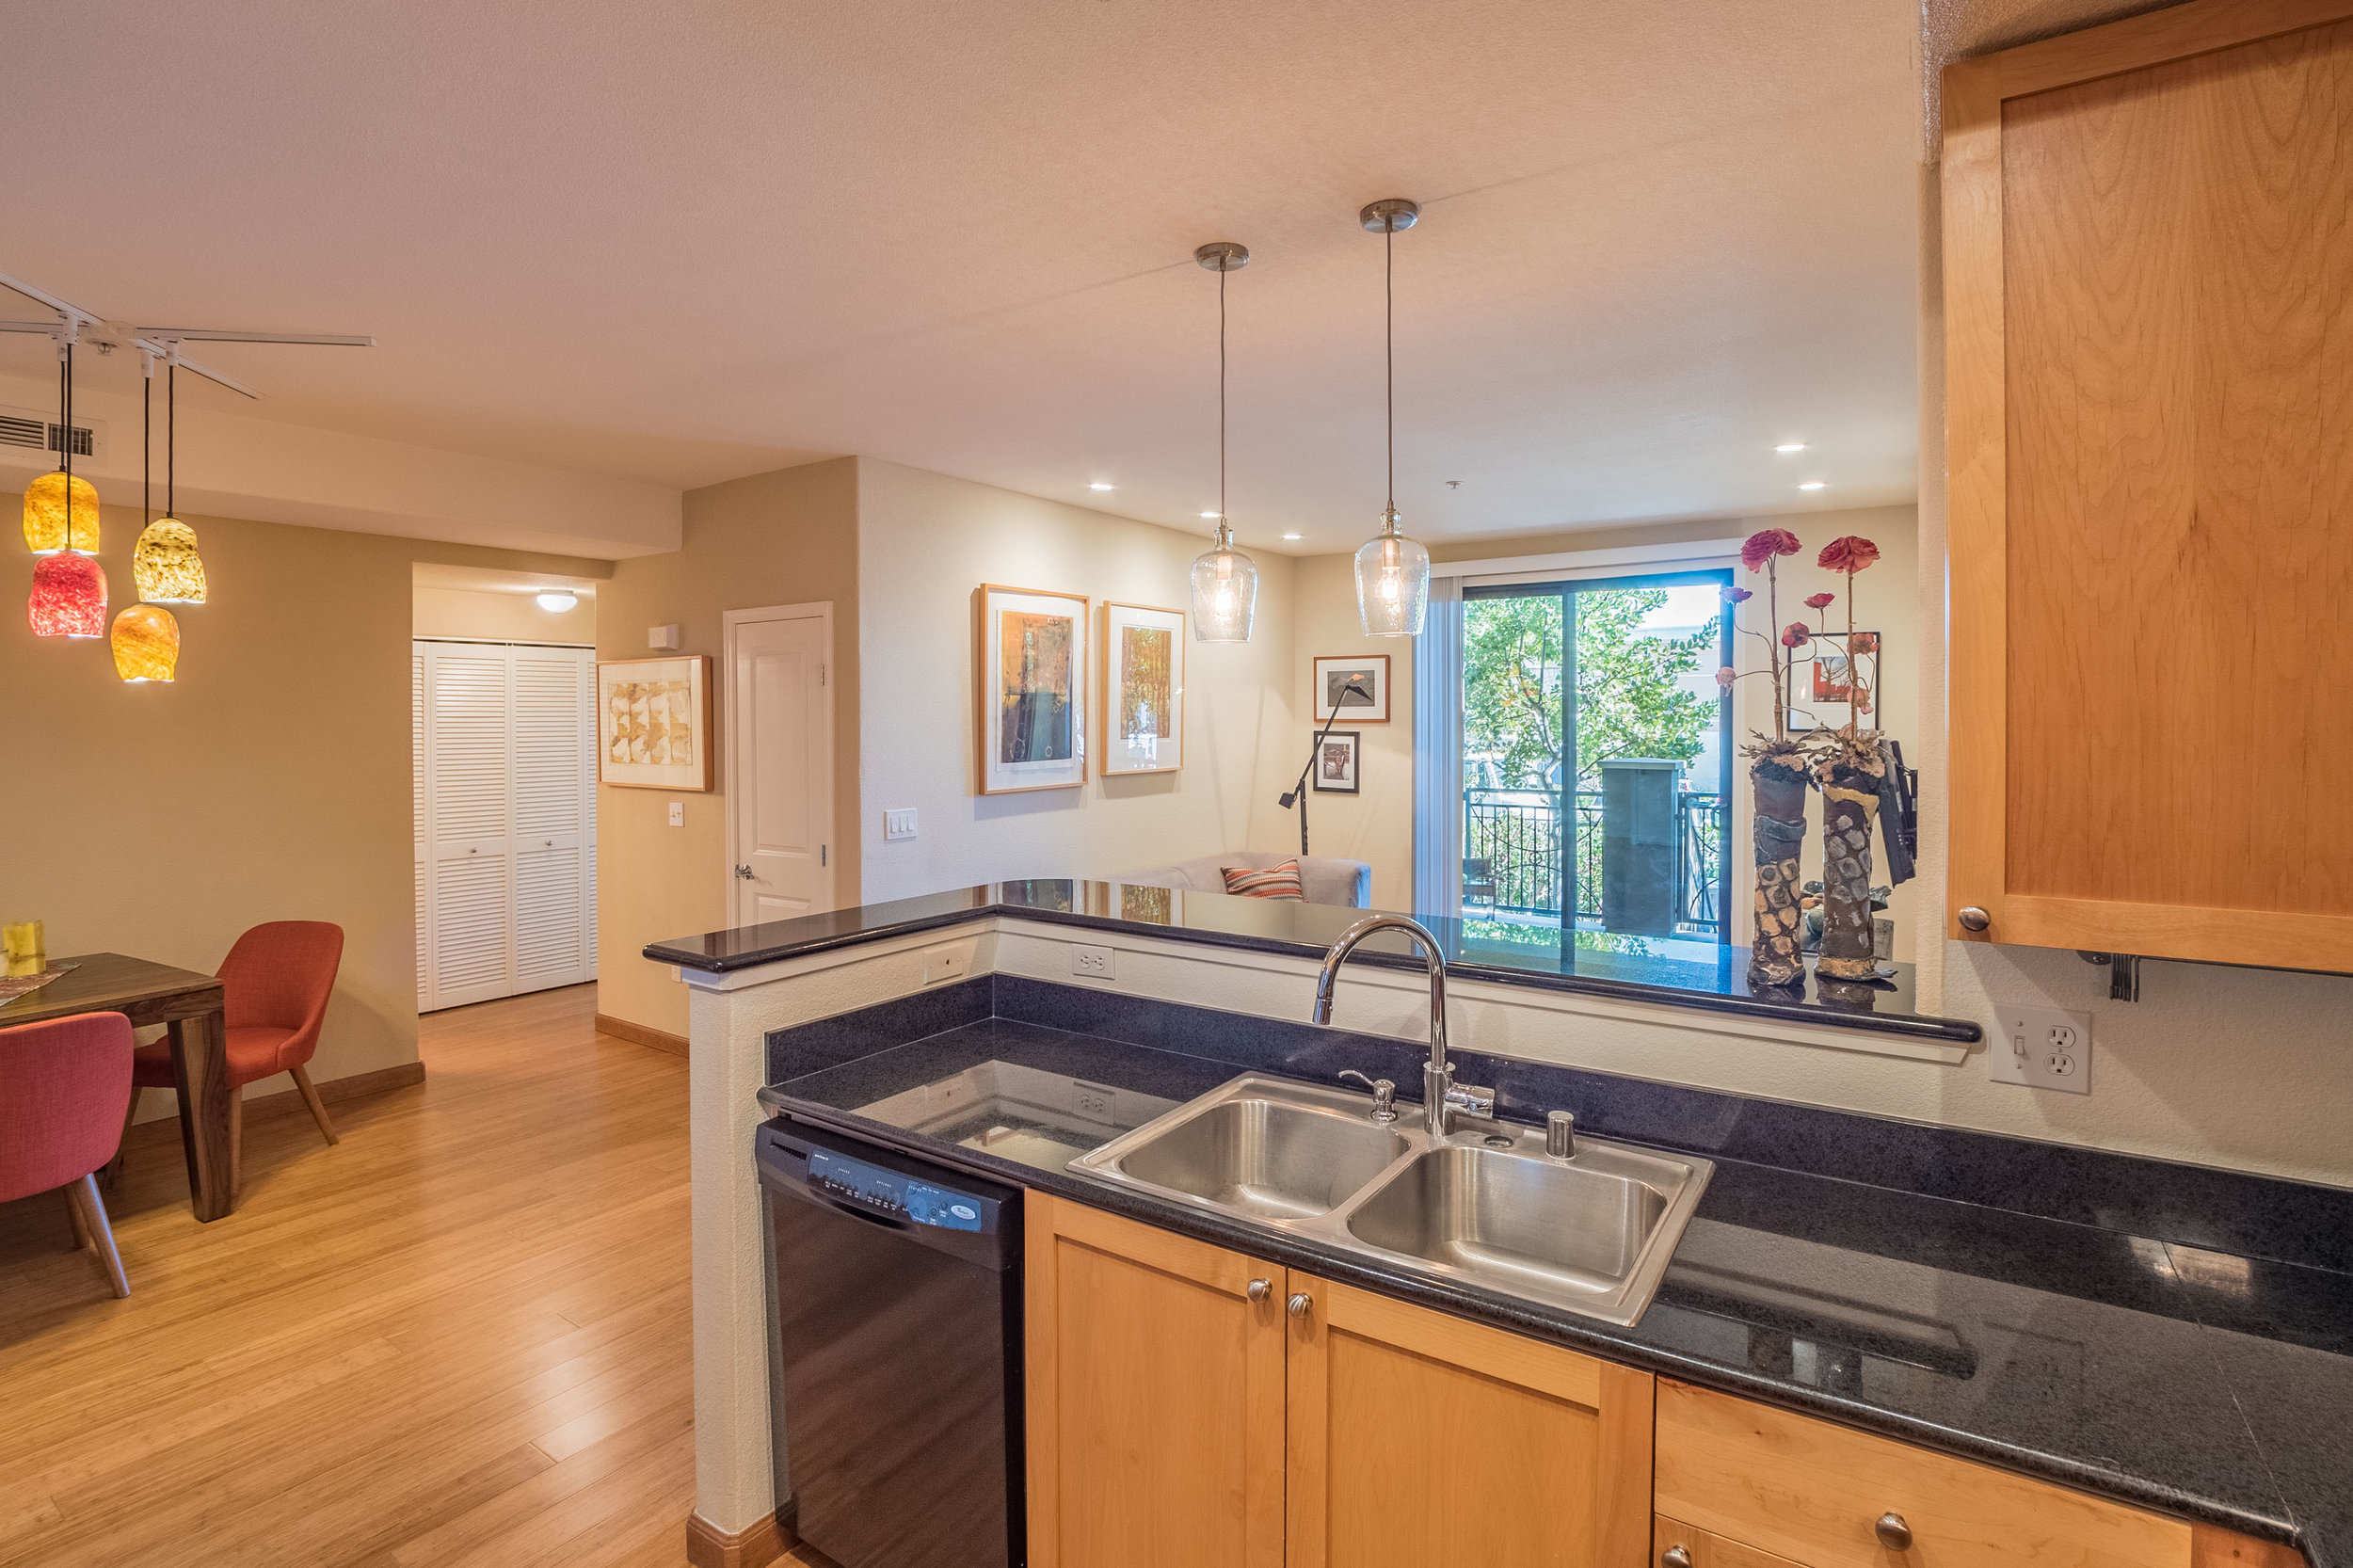 2 Bedroom Cupertino Condo with Open Floor Plan and Natural Light